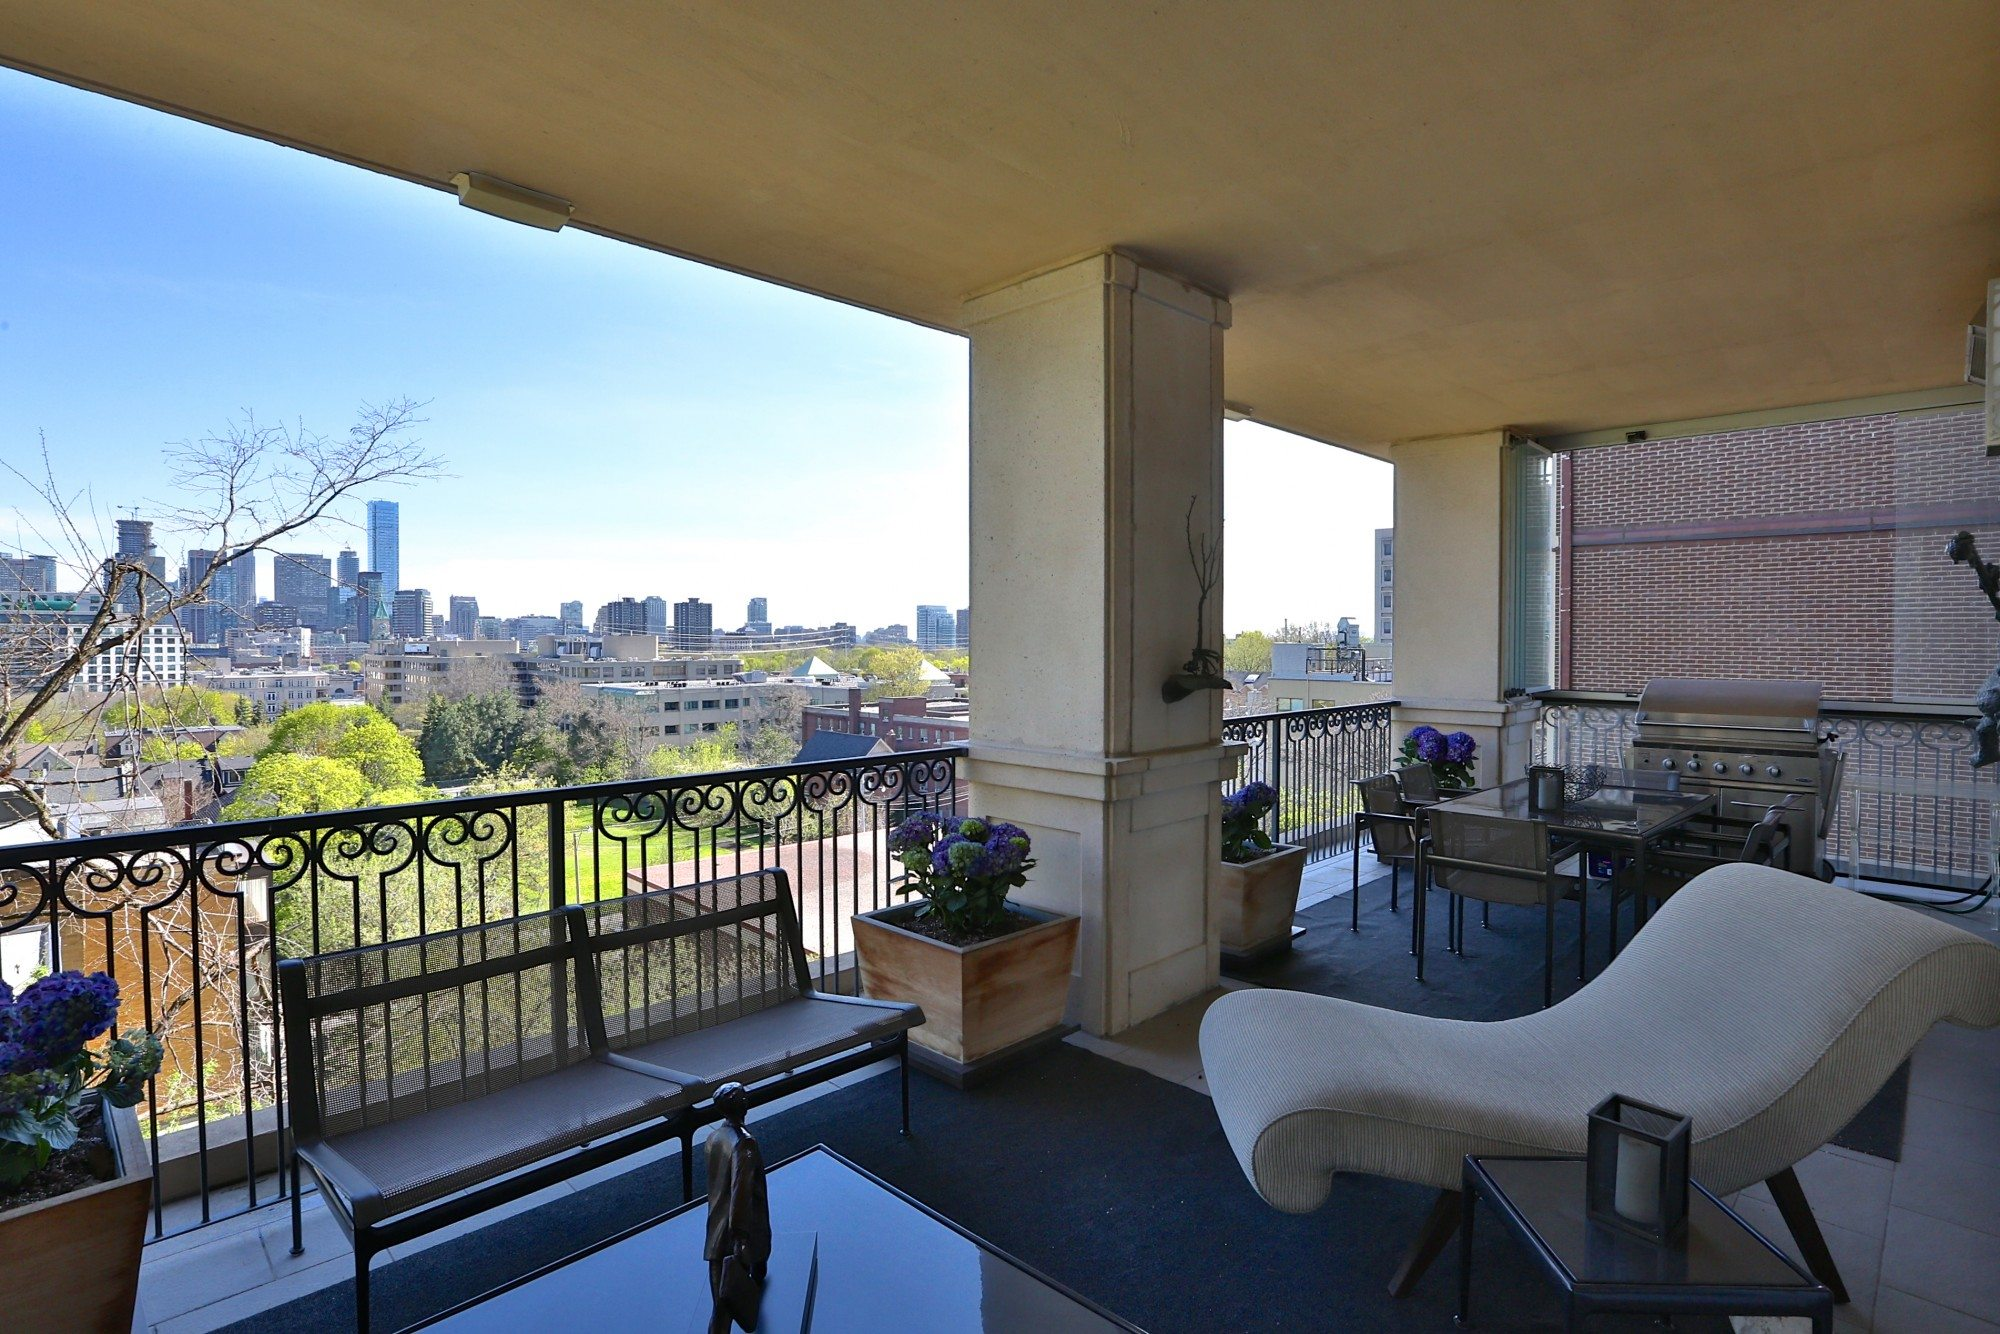 toronto-condo-for-sale-9-jackes-avenue-9